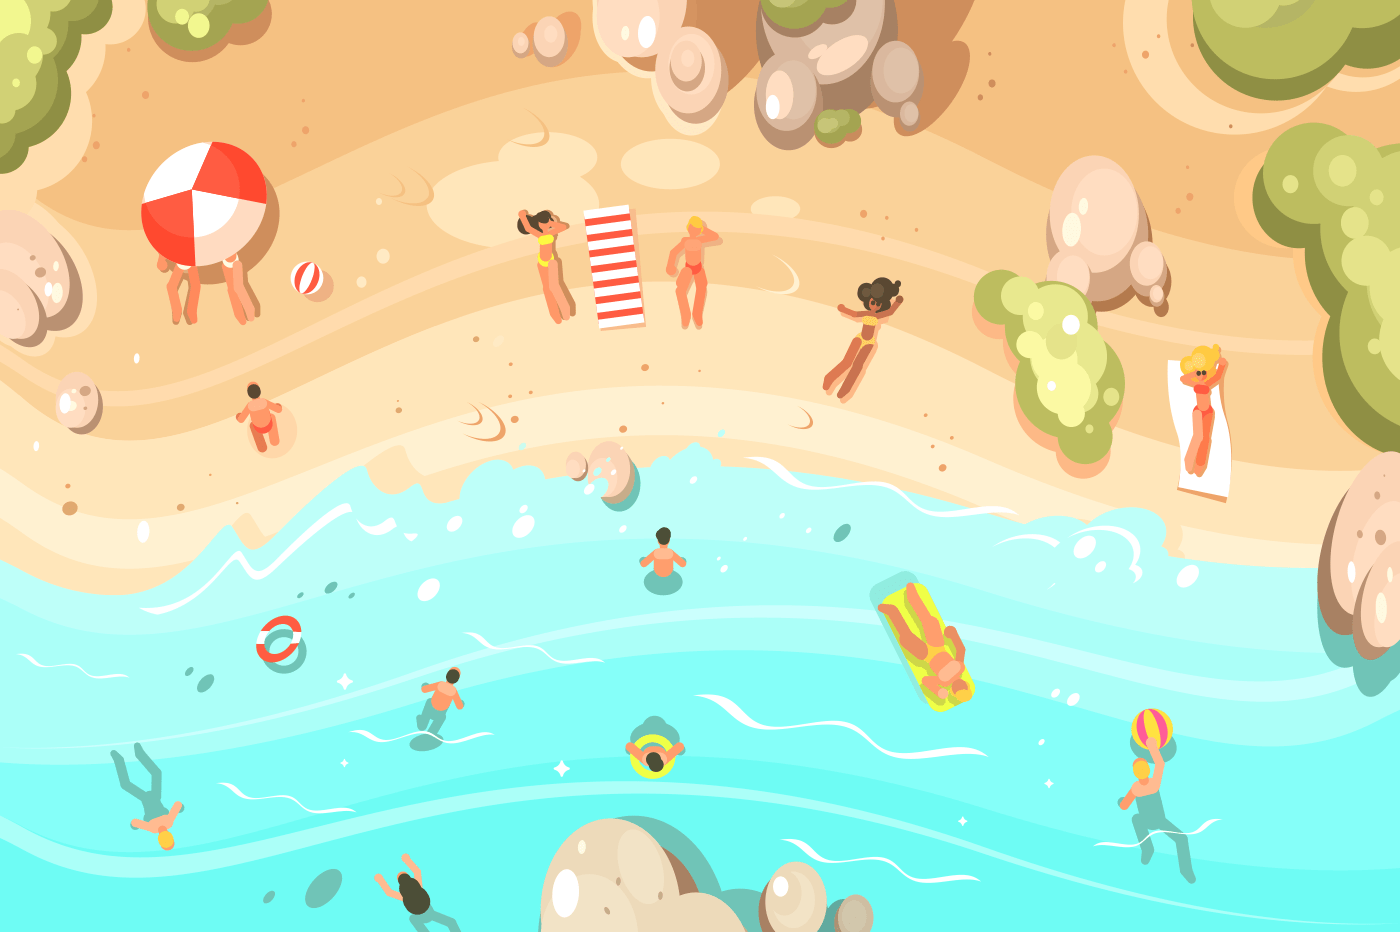 Summer sandy beach with vacationers. People swim and sunbathe. Vector illustration